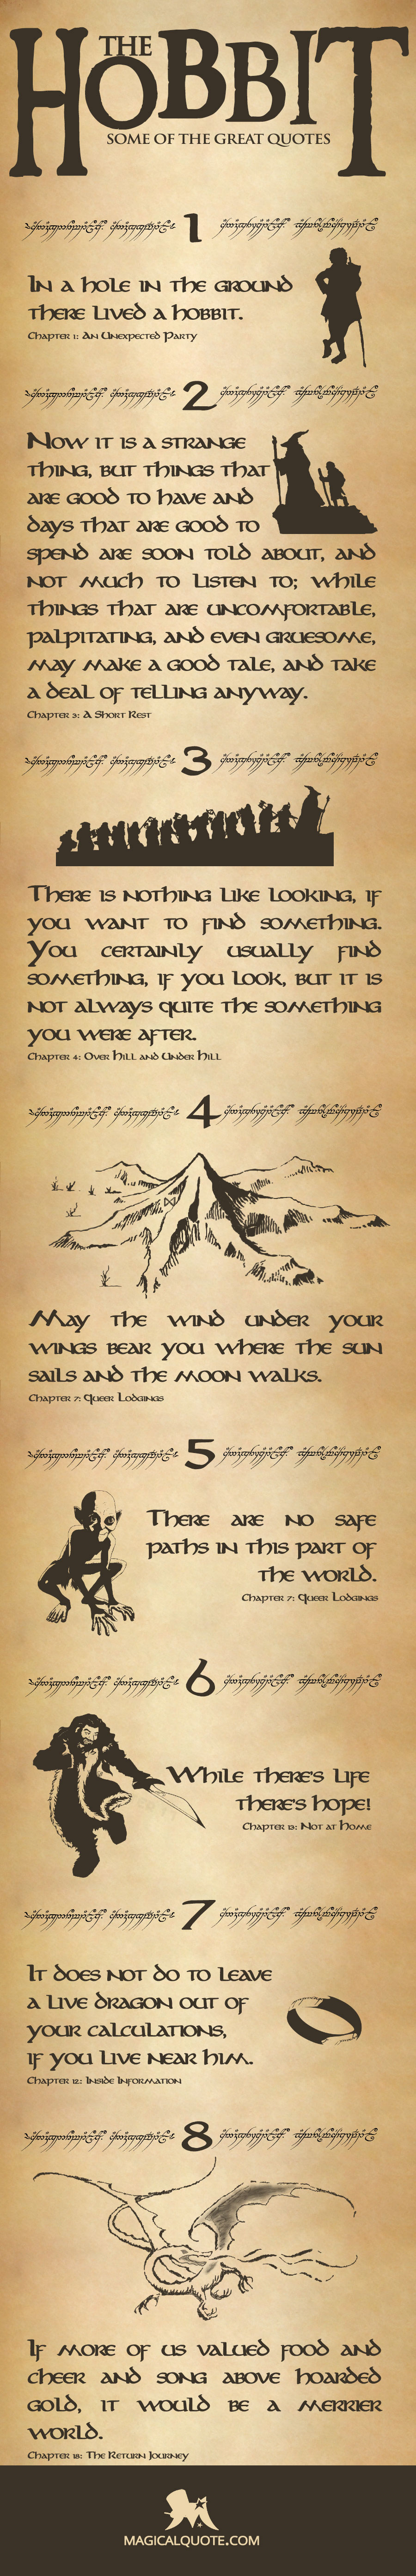 The Hobbit Quotes Infographic